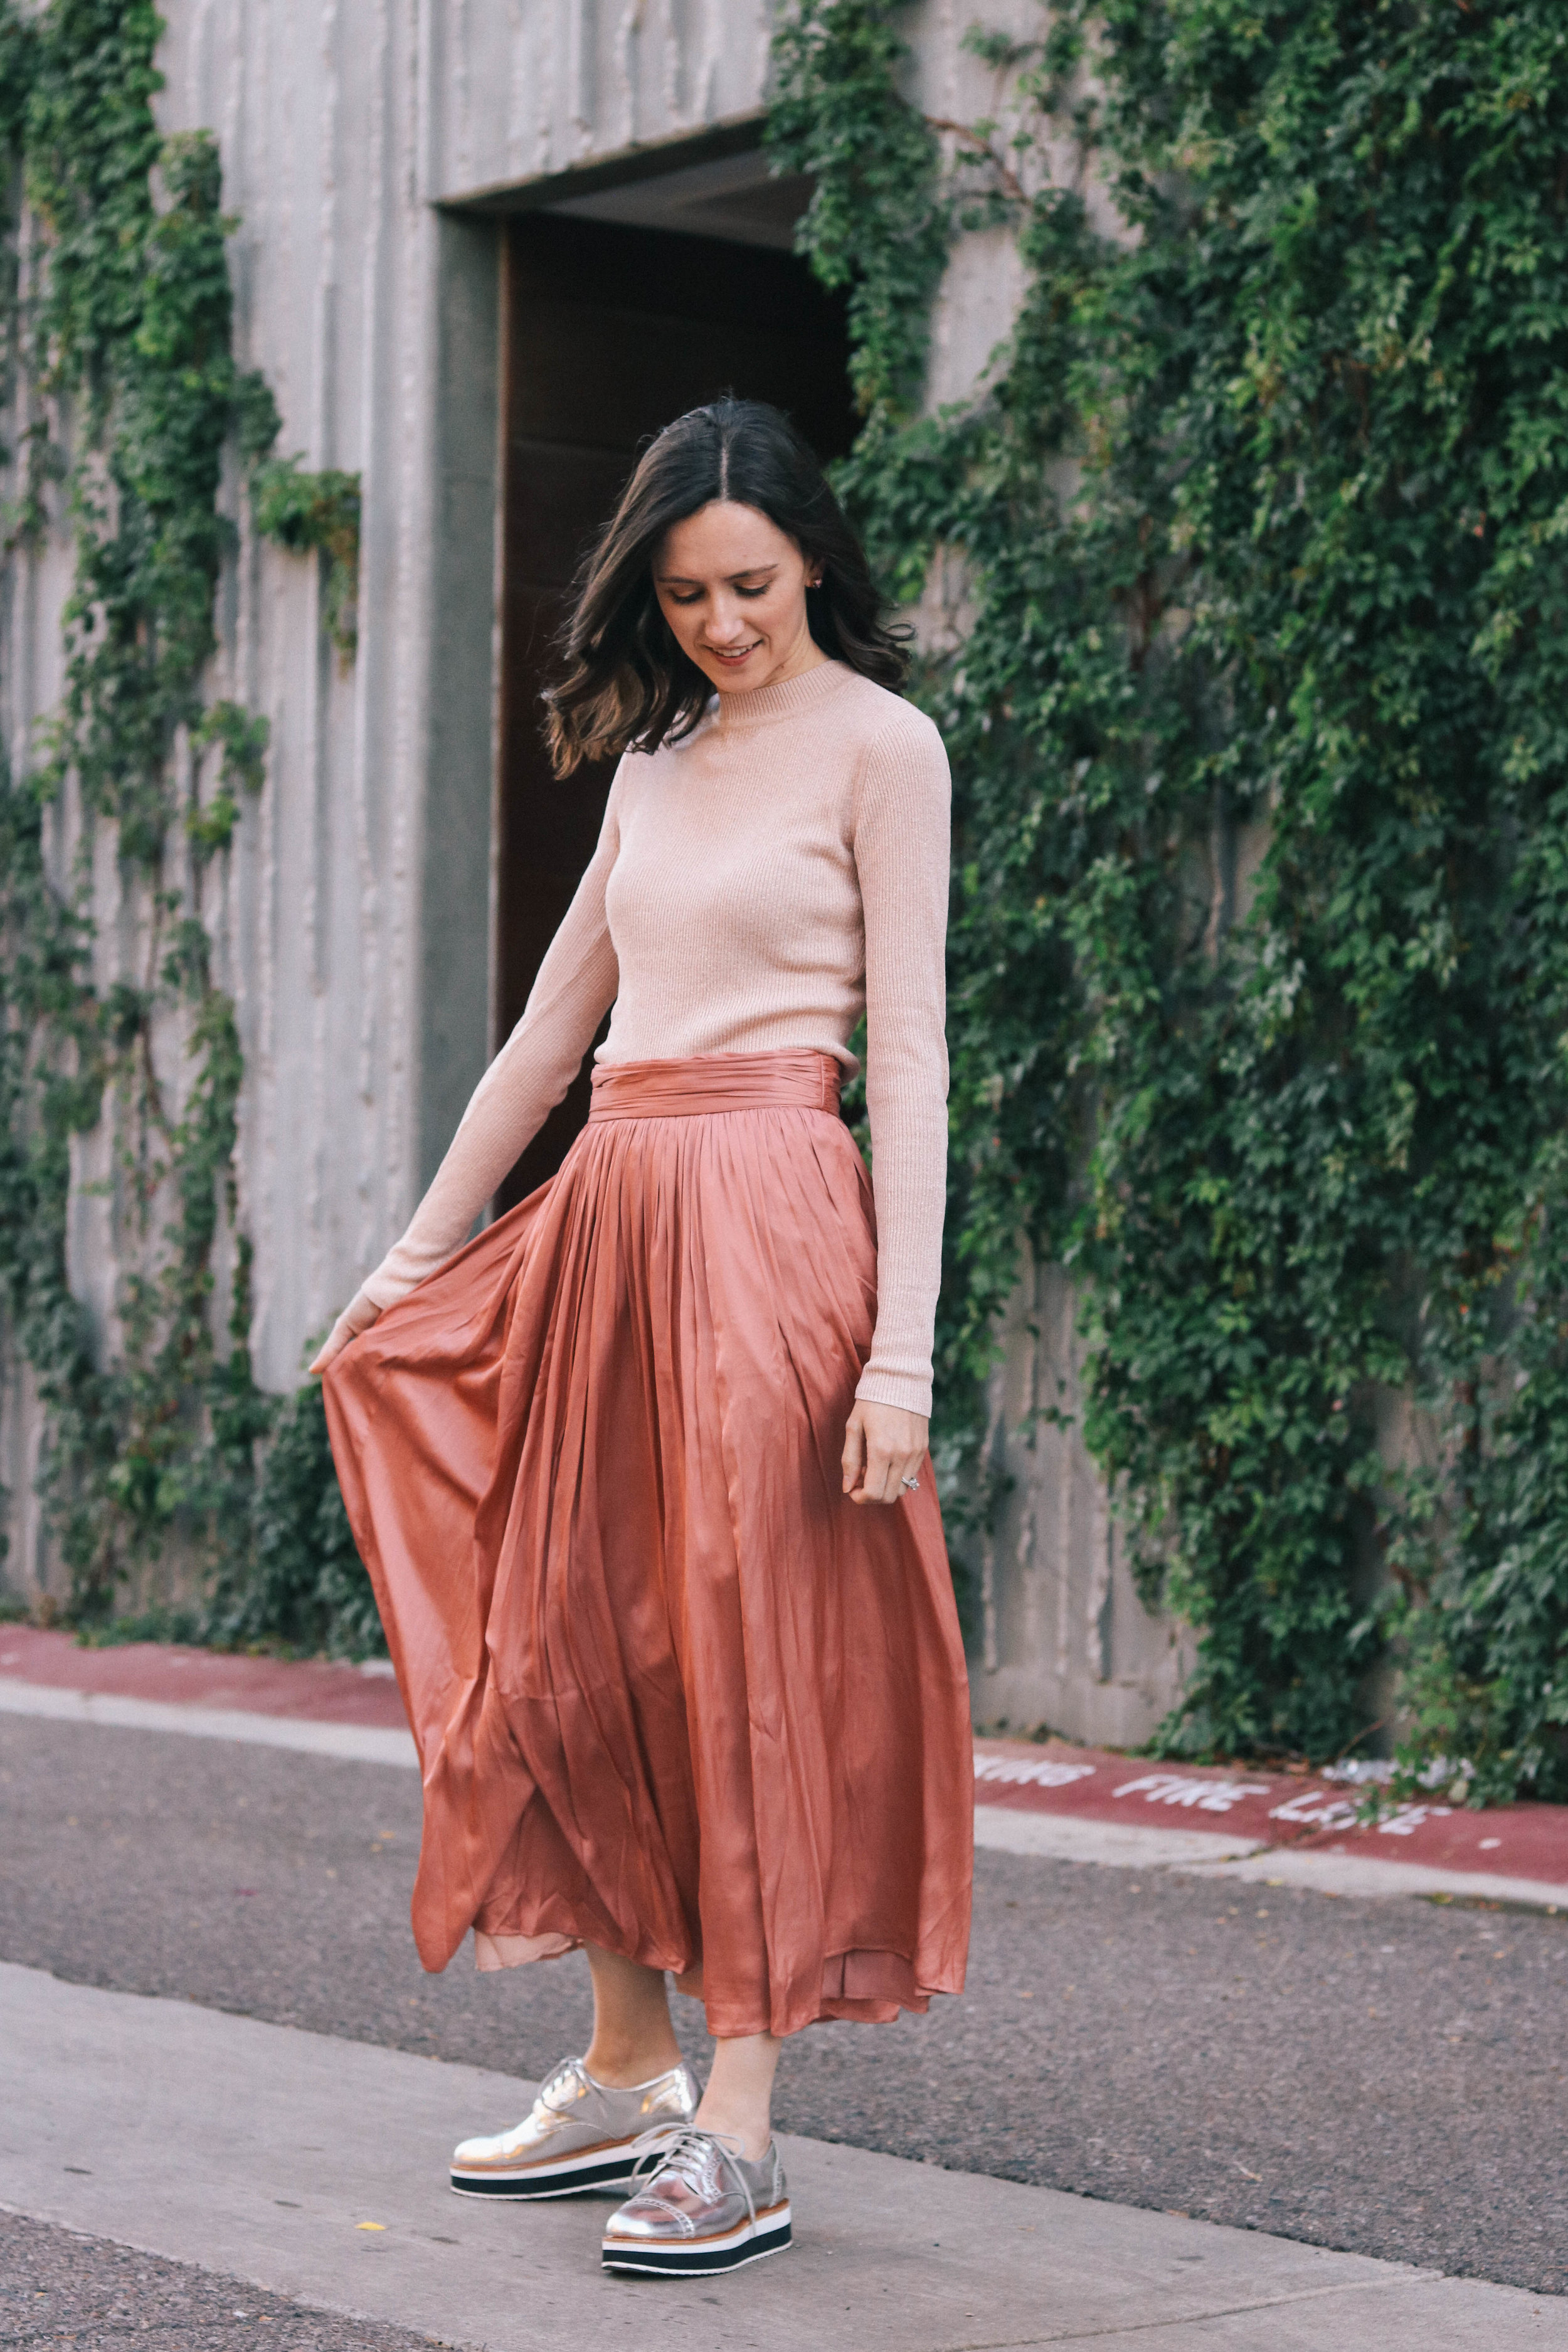 bb-pink-skirt-003 (1 of 1).jpg